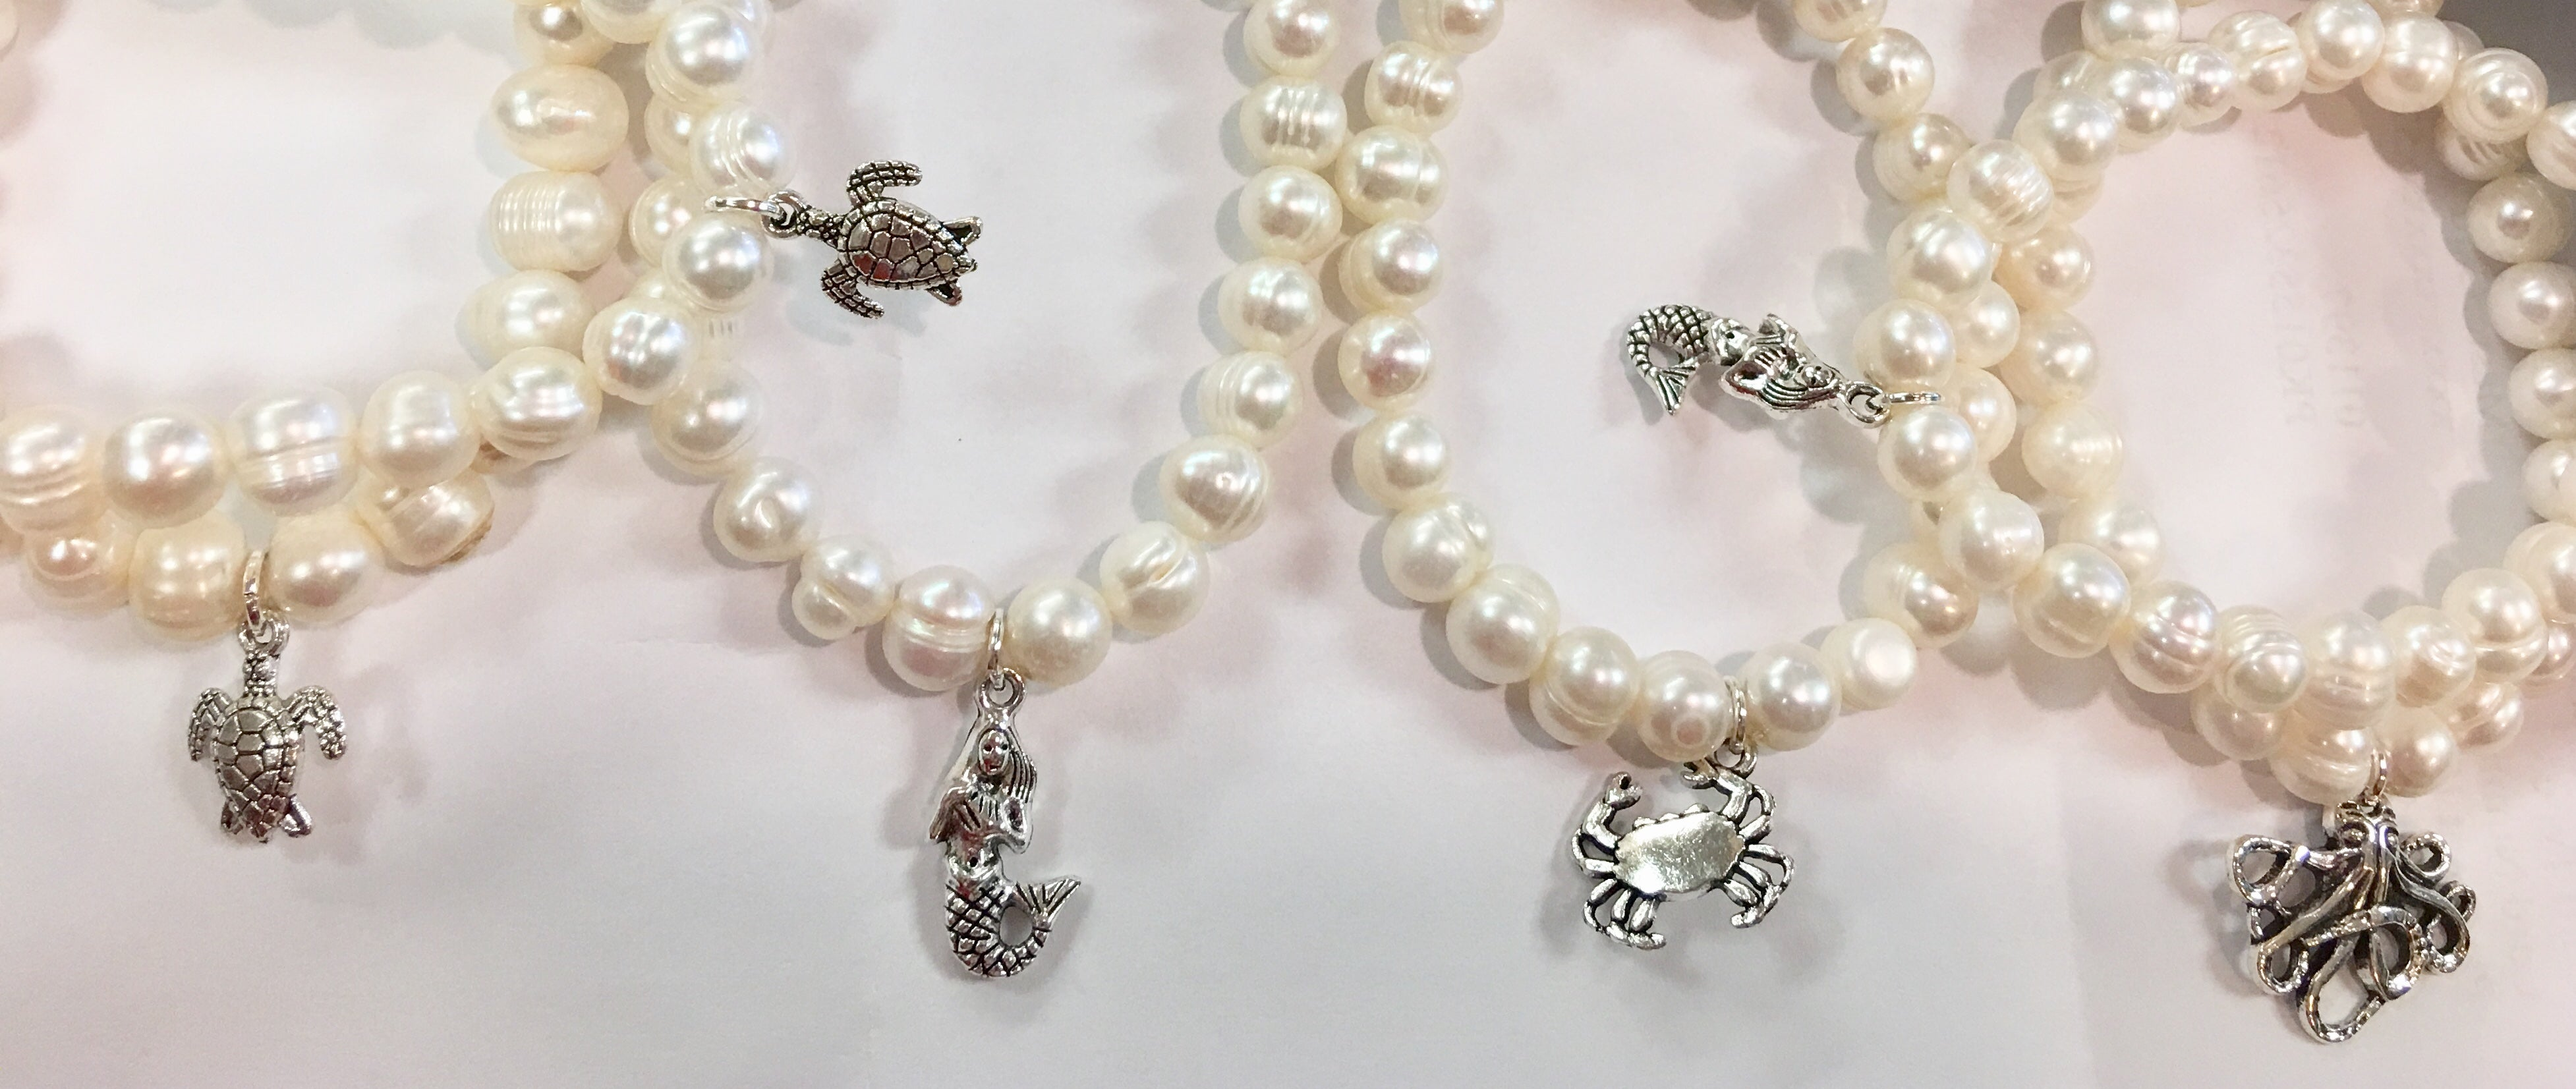 Cultured Freshwater Pearl Silver Charm Bracelet